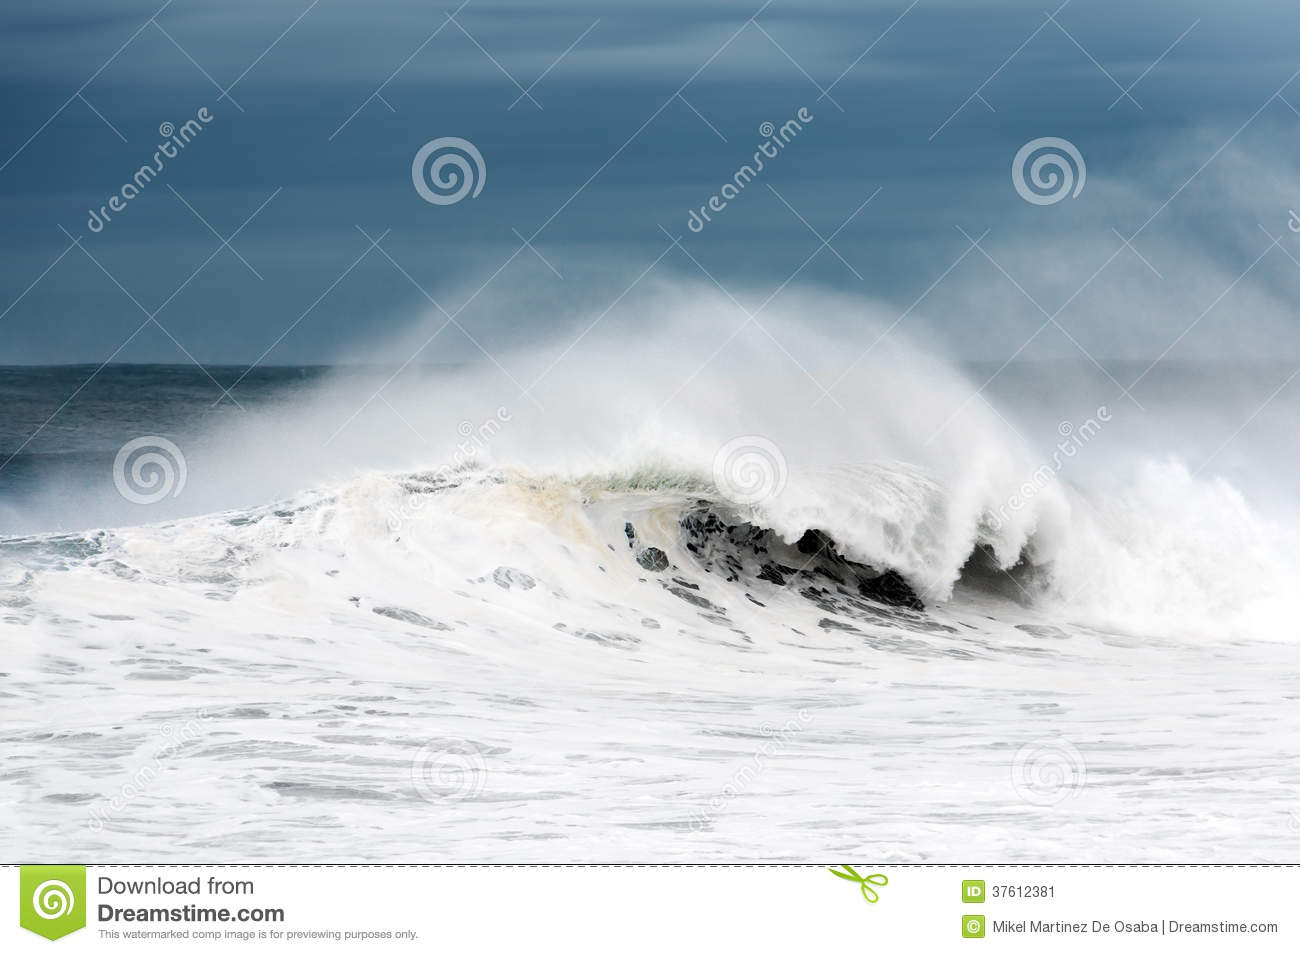 Rough sea with big wave breaking